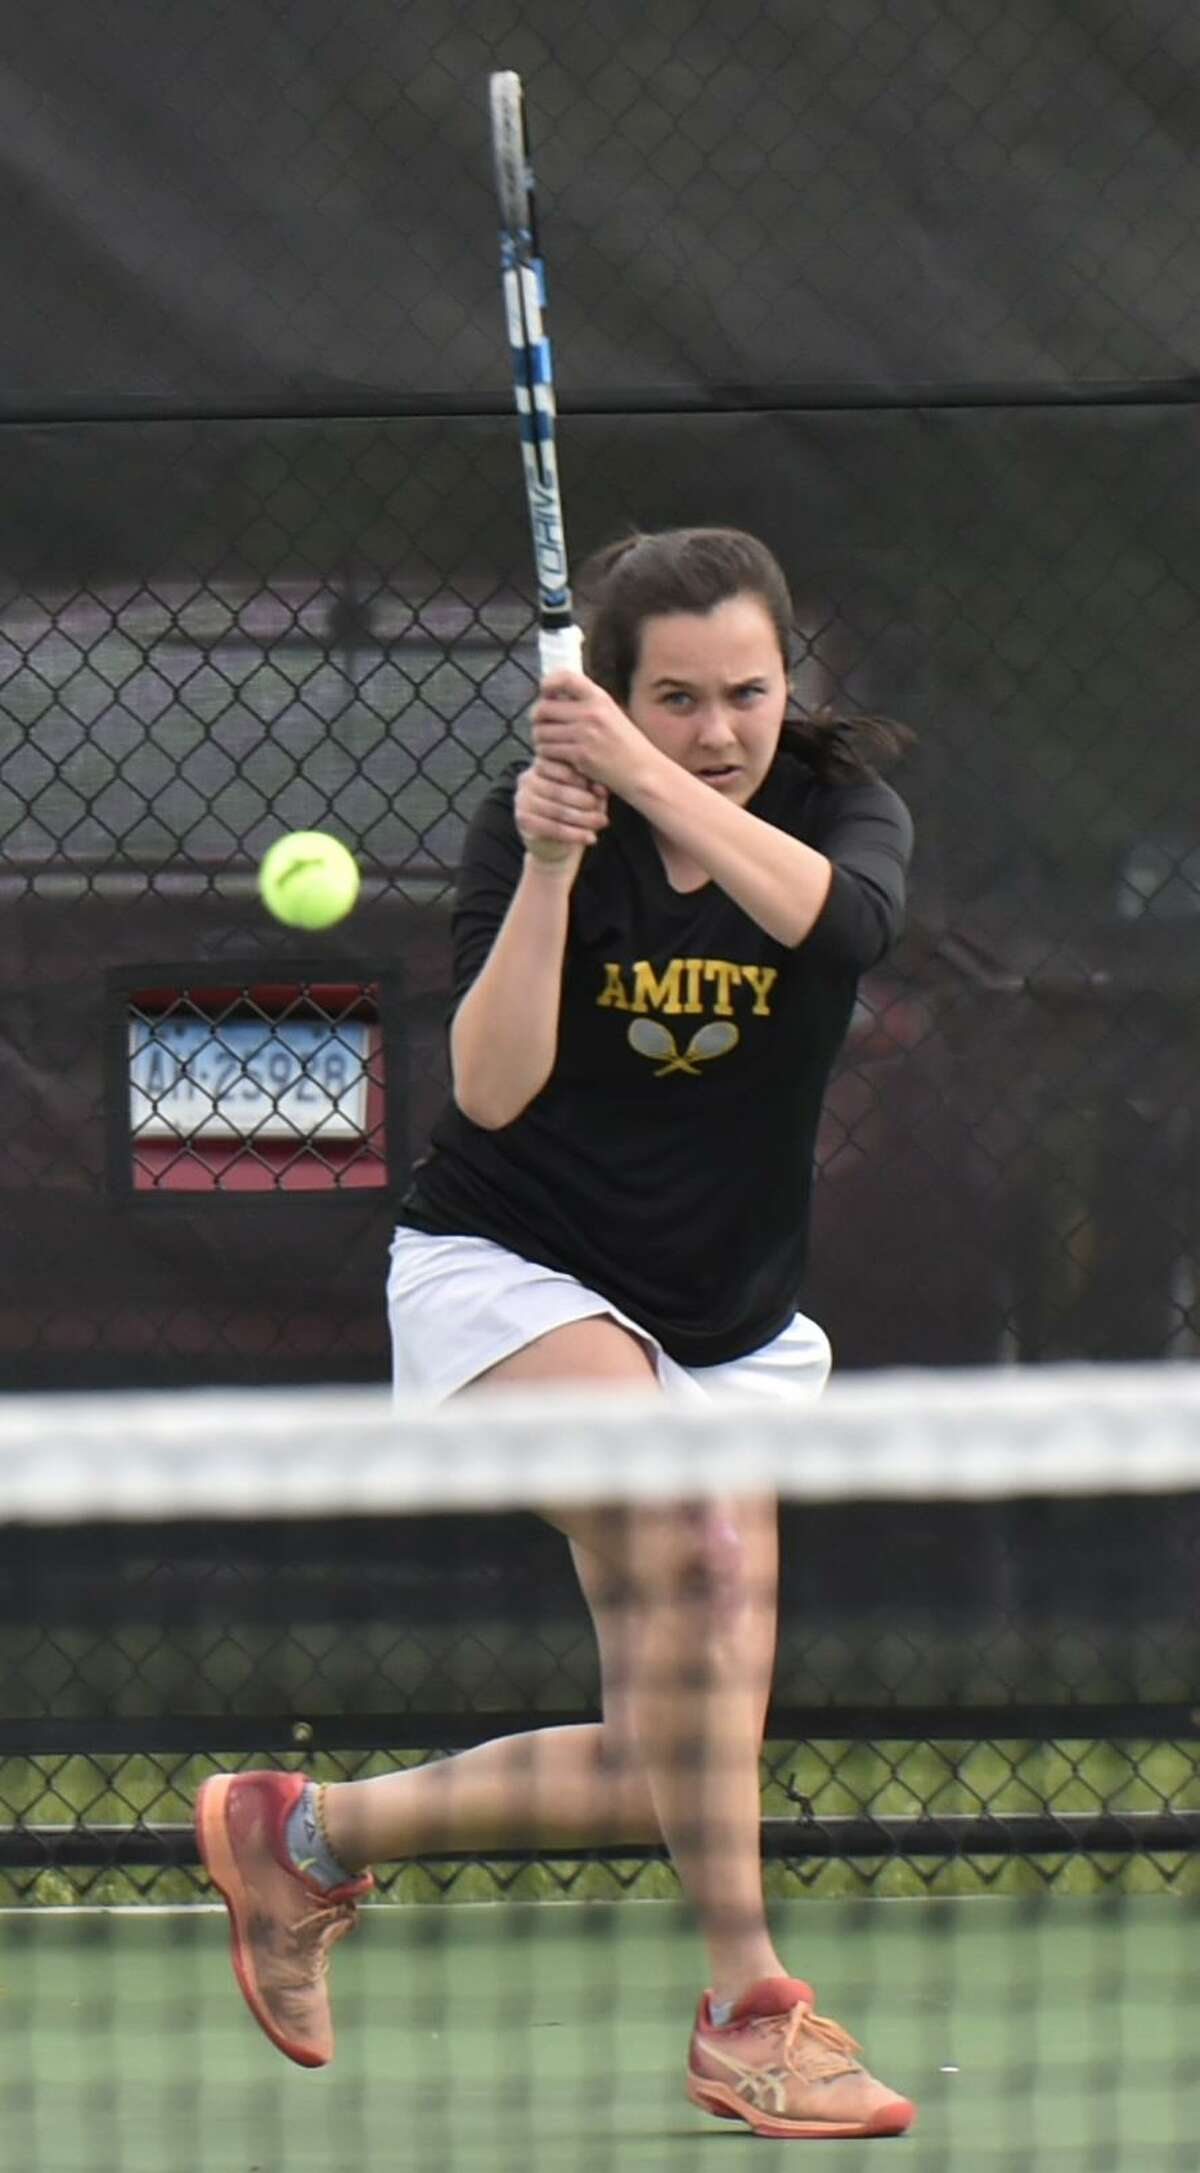 Tuesday S Roundup Hand Girls Tennis Wins 49th Straight Match Ludlowe S Wykoff Sets School Record Welcome to the newly rebranded josh potter show! hand girls tennis wins 49th straight